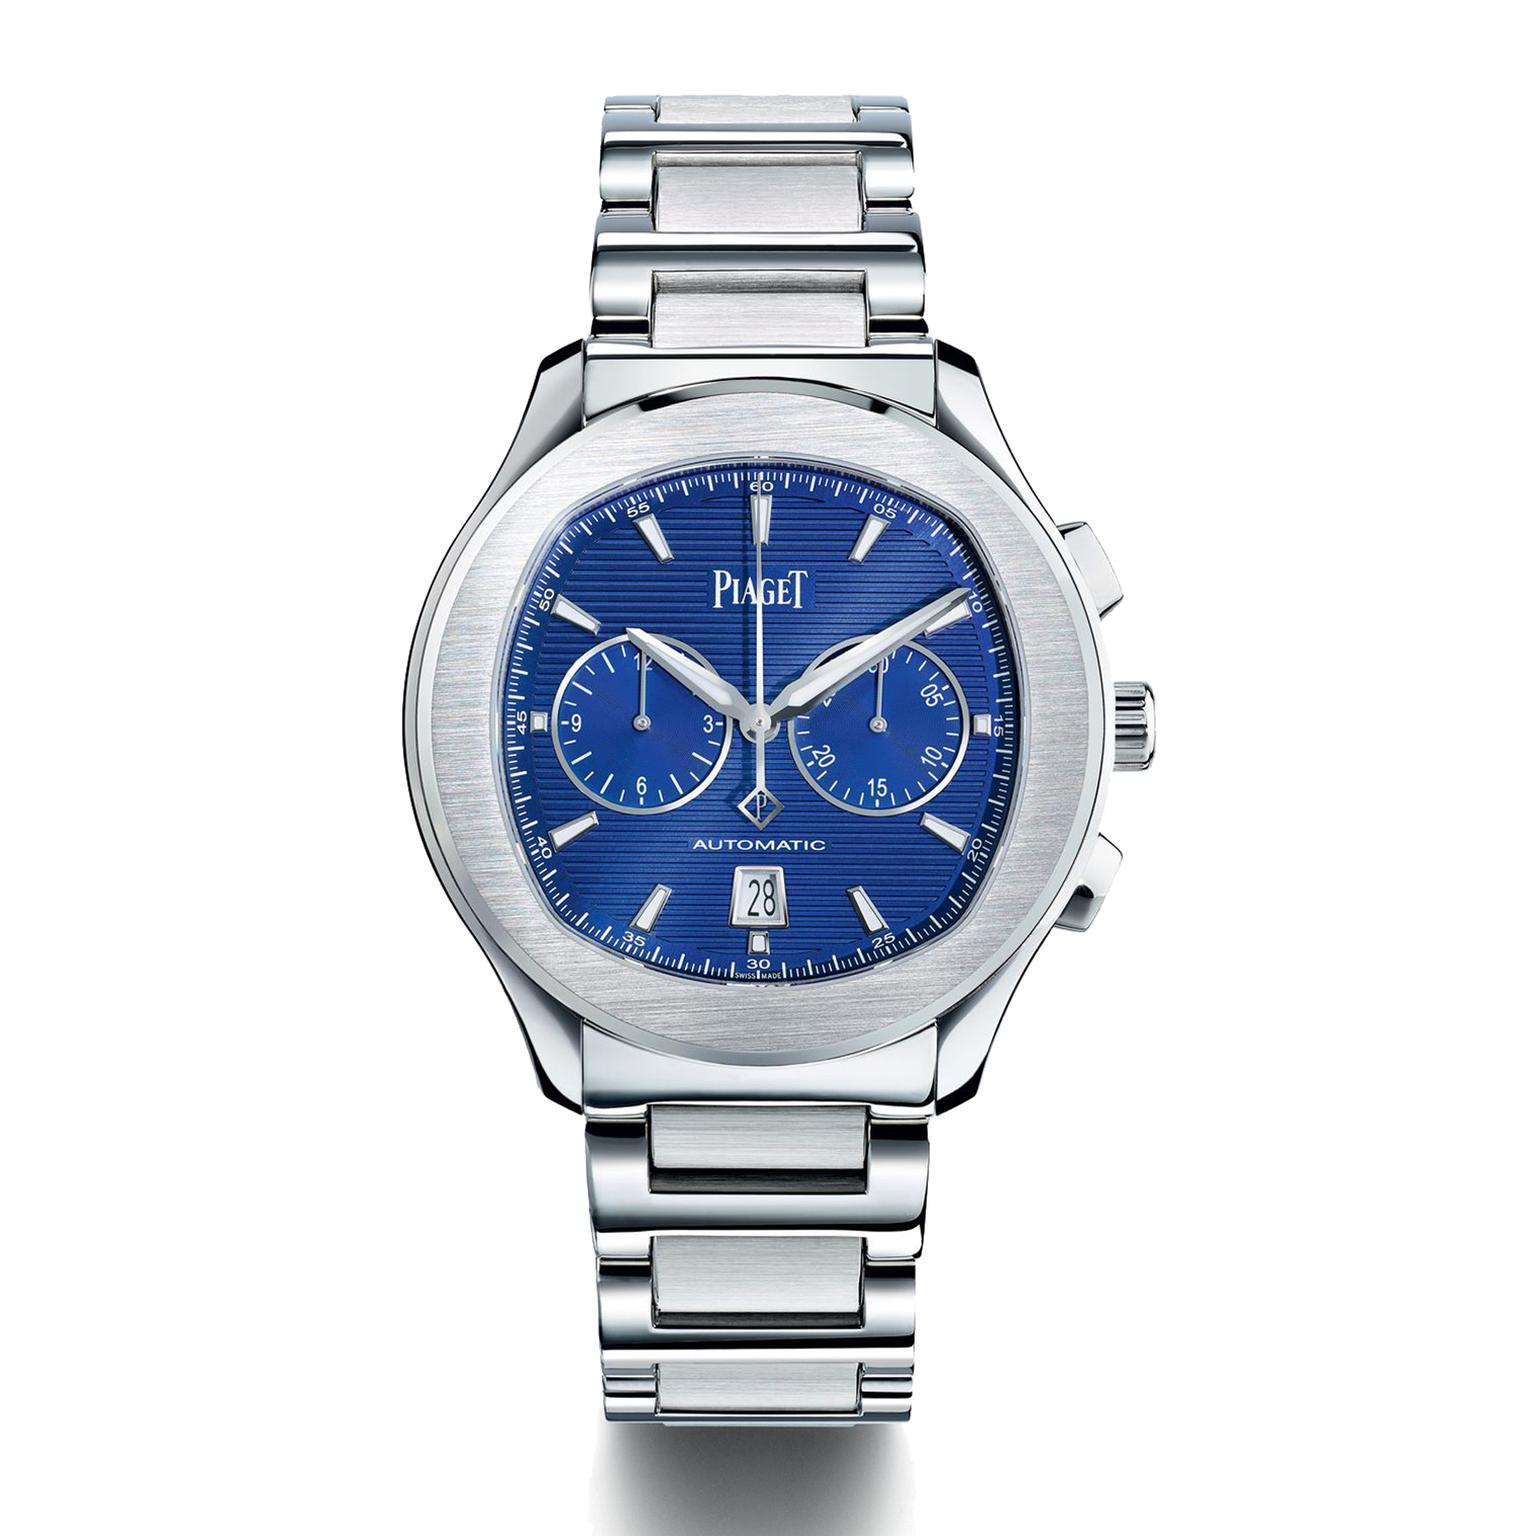 Piaget Polo S Chronograph watch